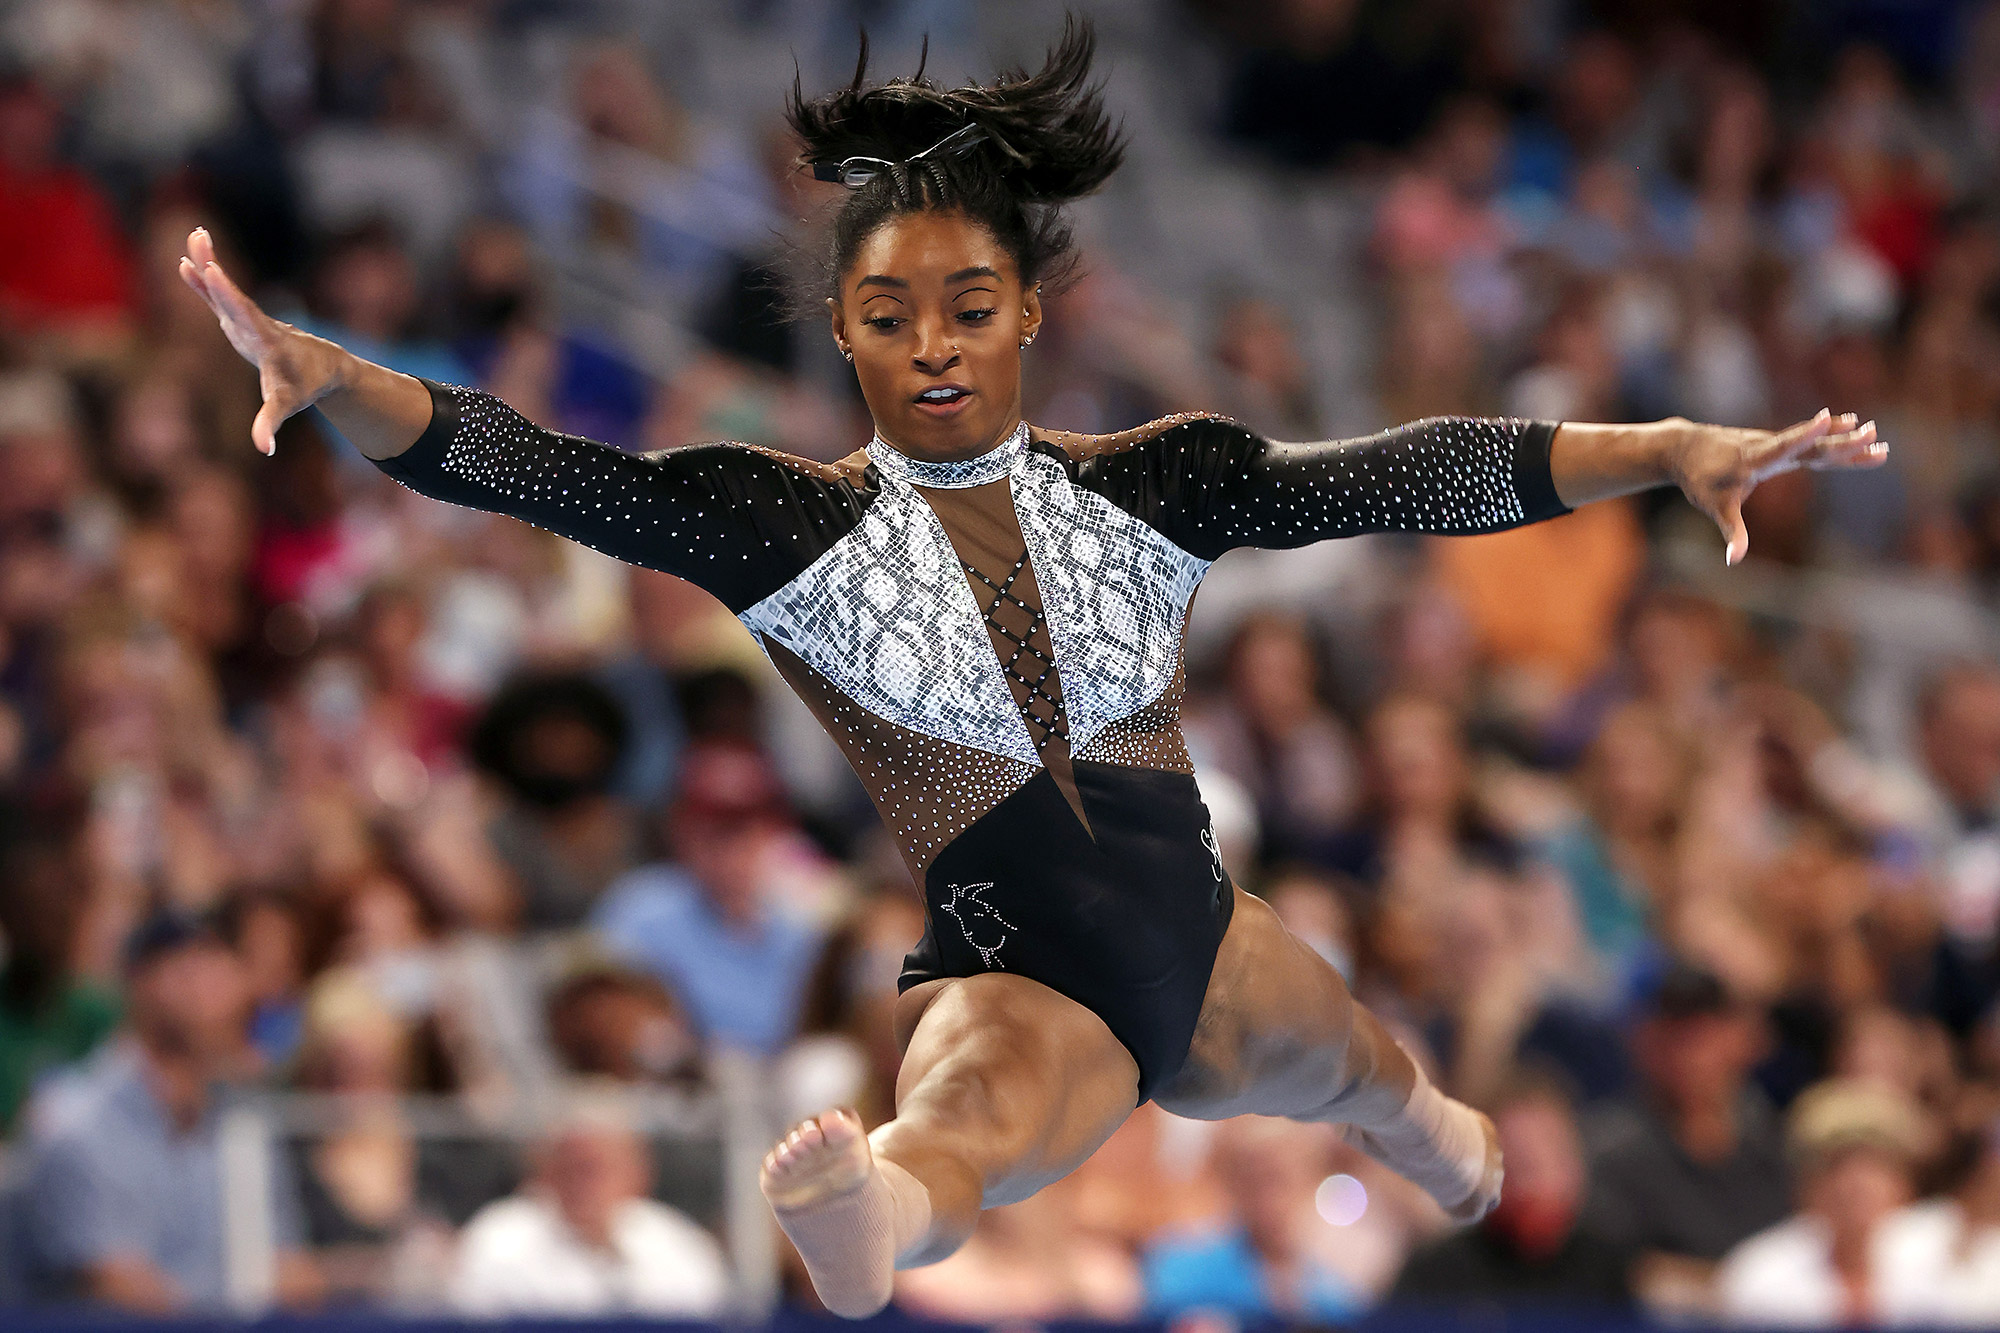 Simone Biles competes in the floor exercise during the Senior Women's competition of the U.S. Gymnastics Championships at Dickies Arena on June 06, 2021 in Fort Worth